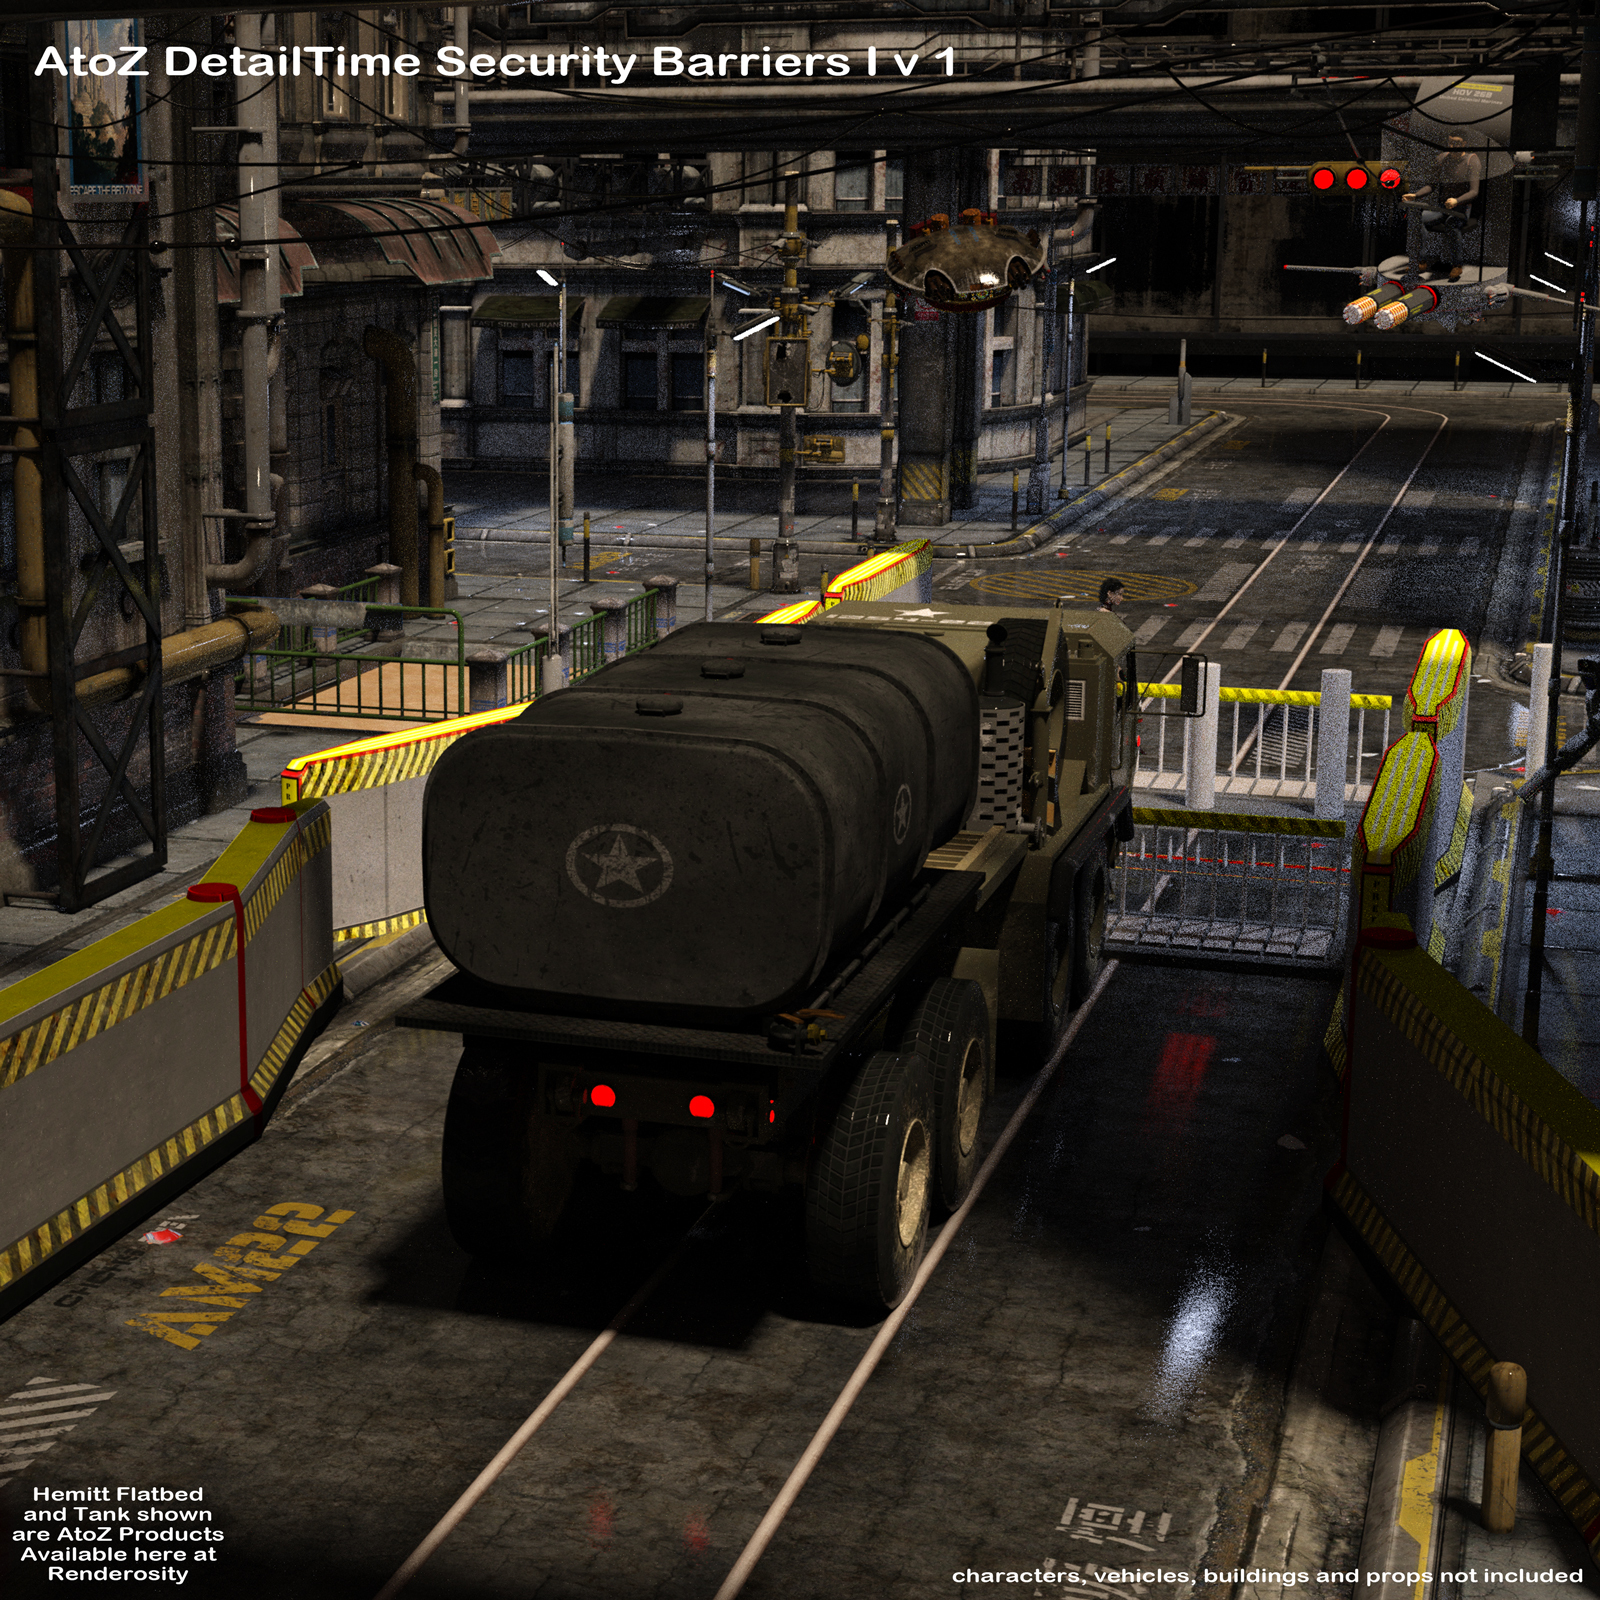 AtoZ DetailTime Roadway Security I v1 for Poser and DS by AtoZ